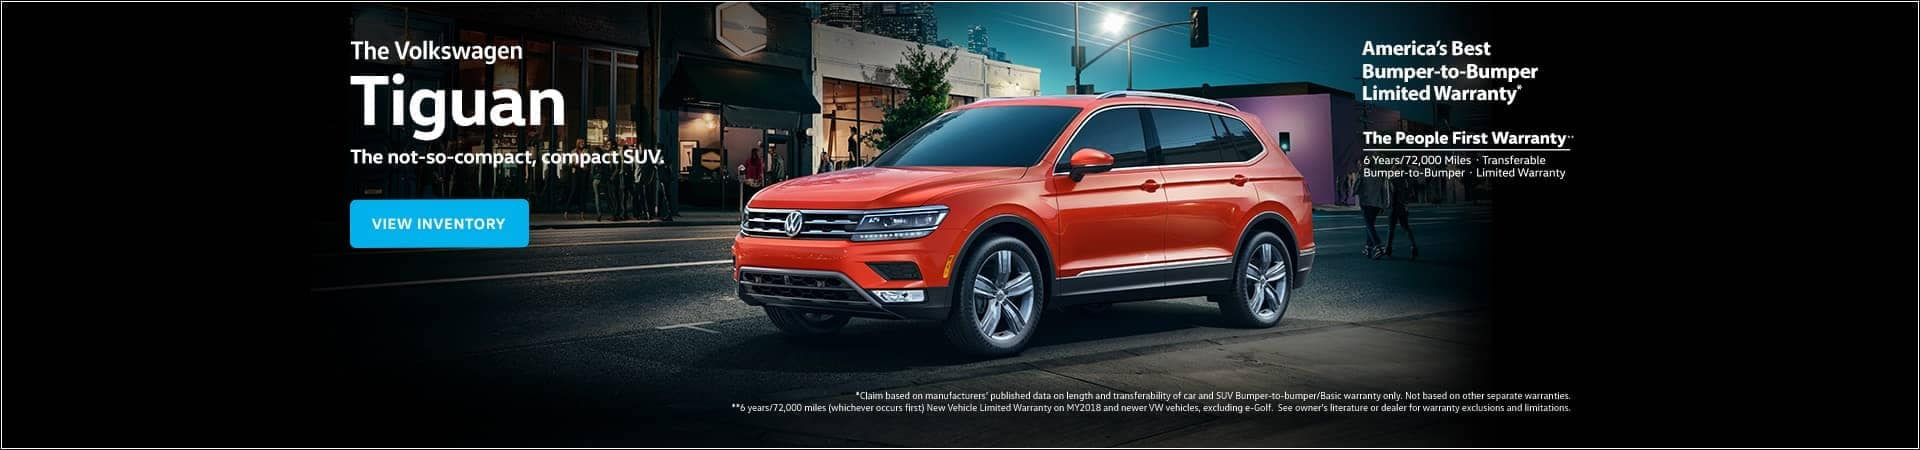 VW Tiguan promotion